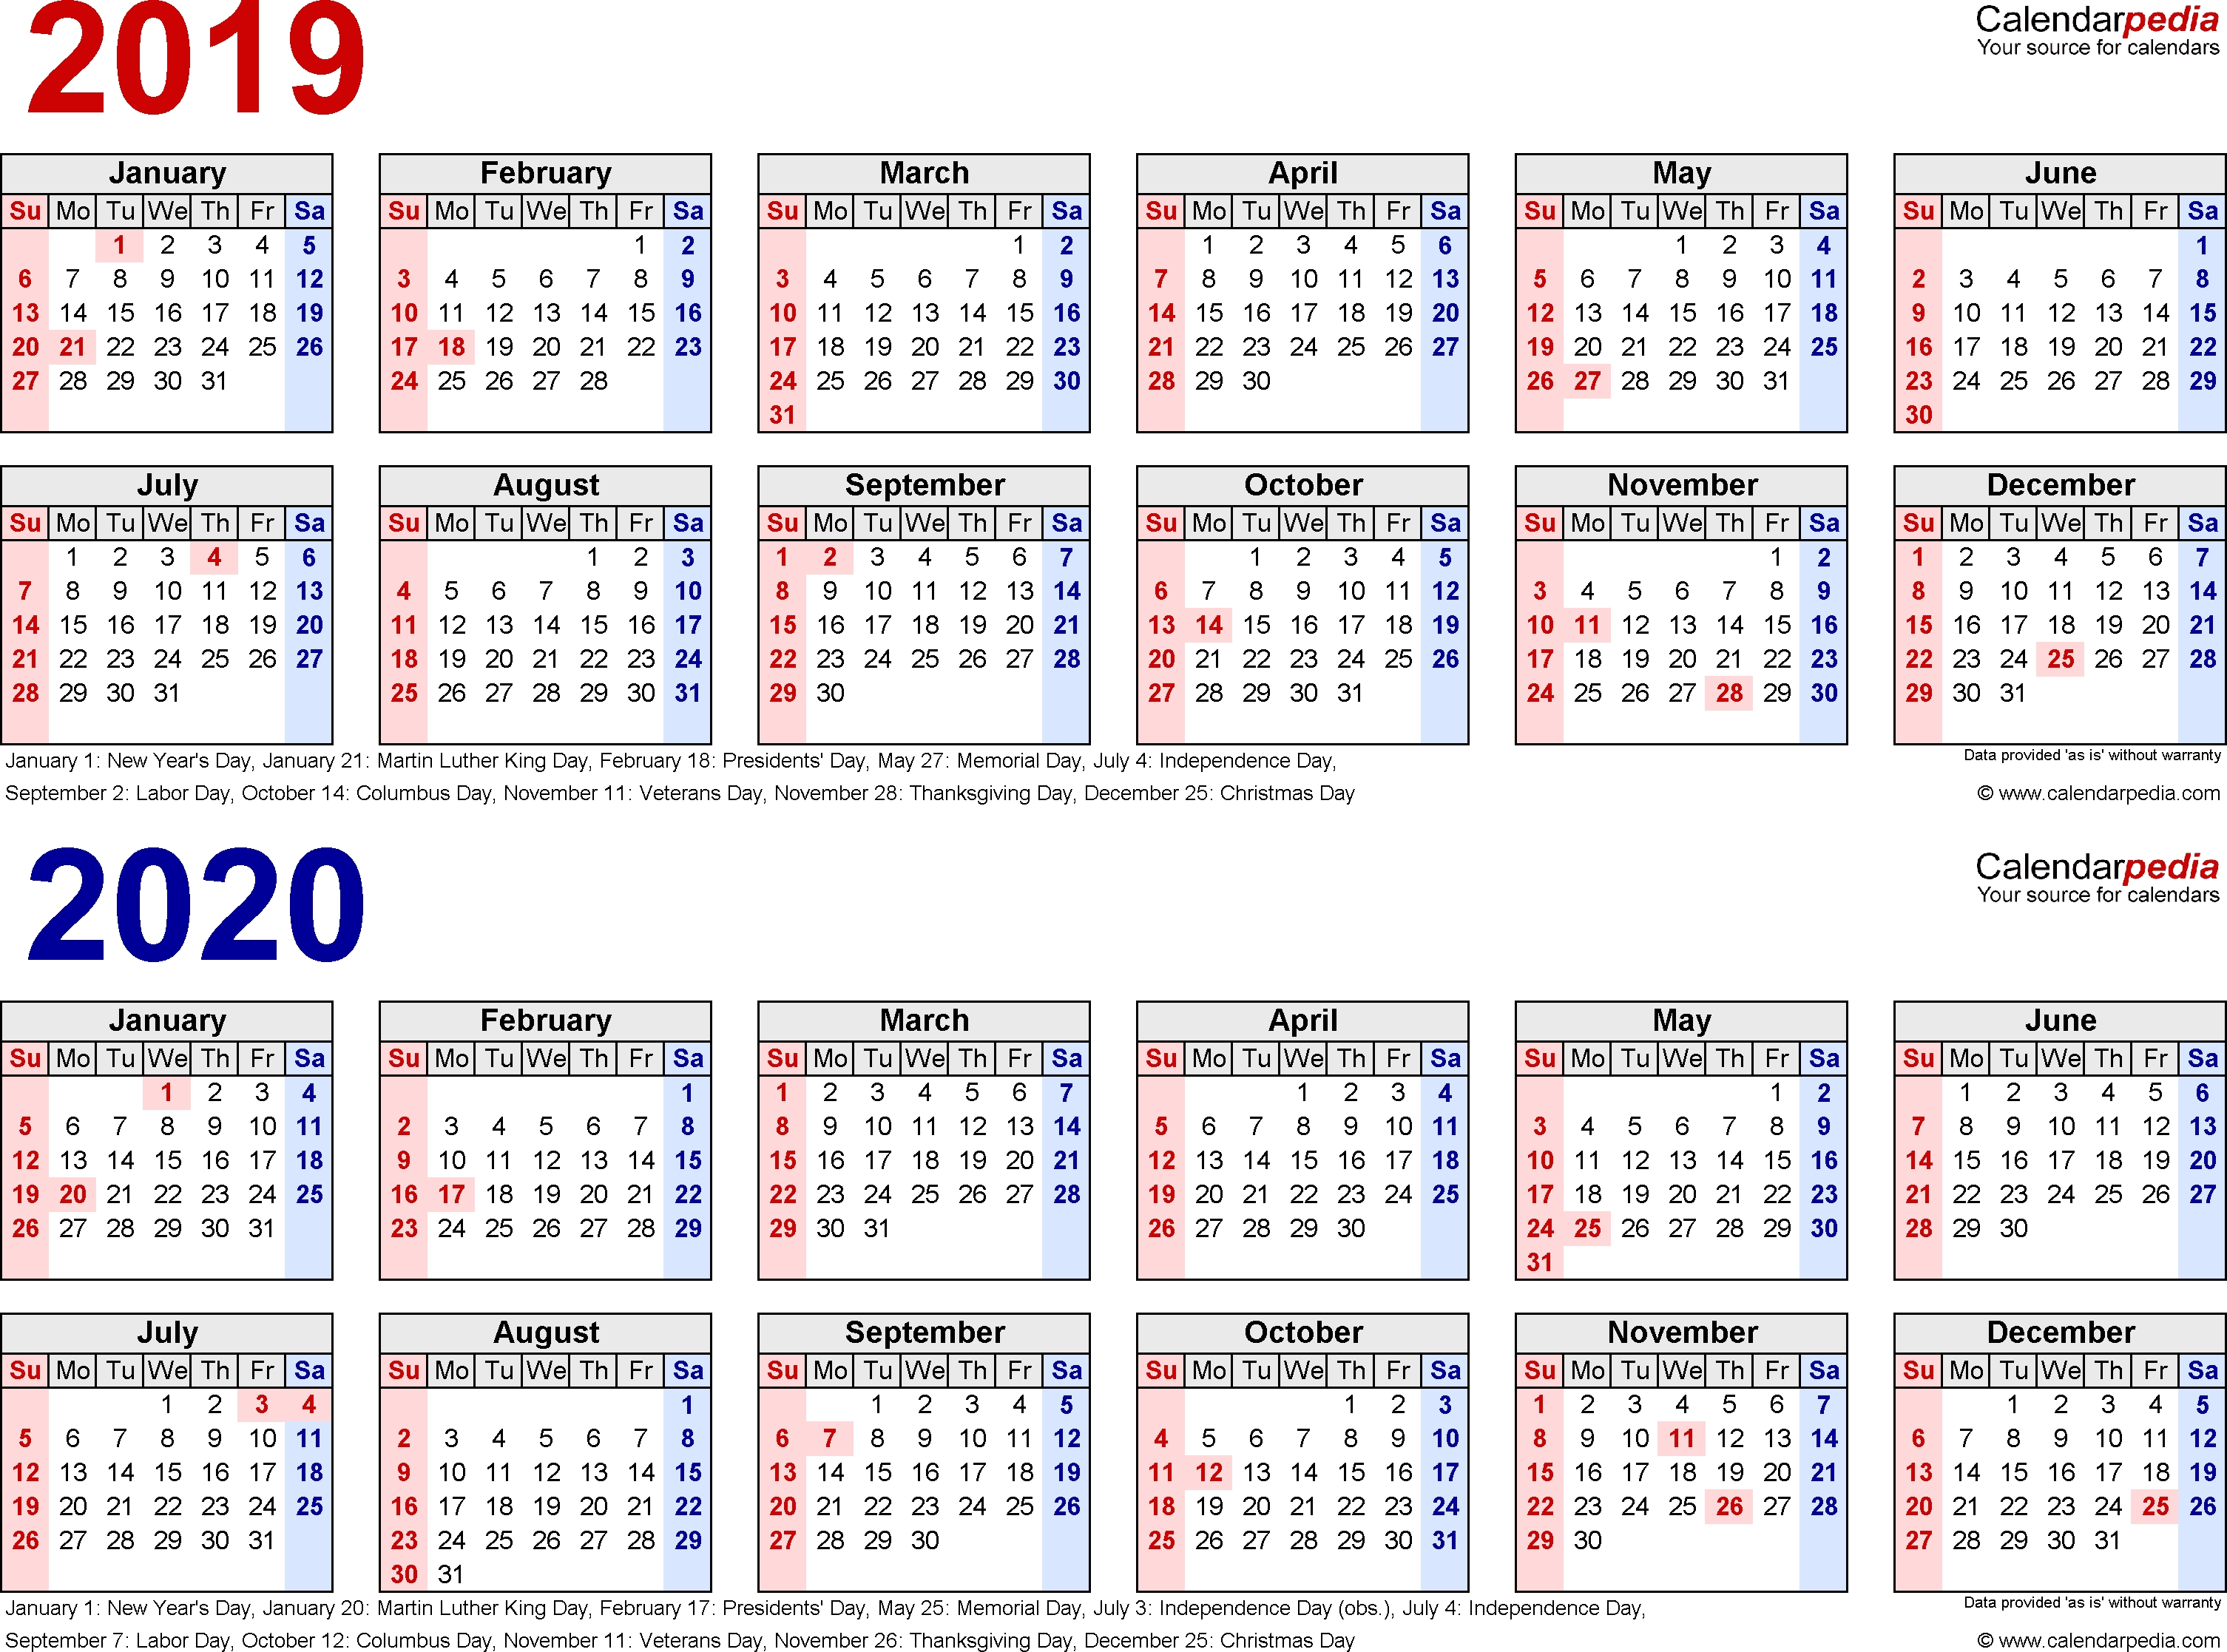 2019-2020 Calendar - Free Printable Two-Year Word Calendars throughout Free Printed Calendars From June 2019 To June 2020